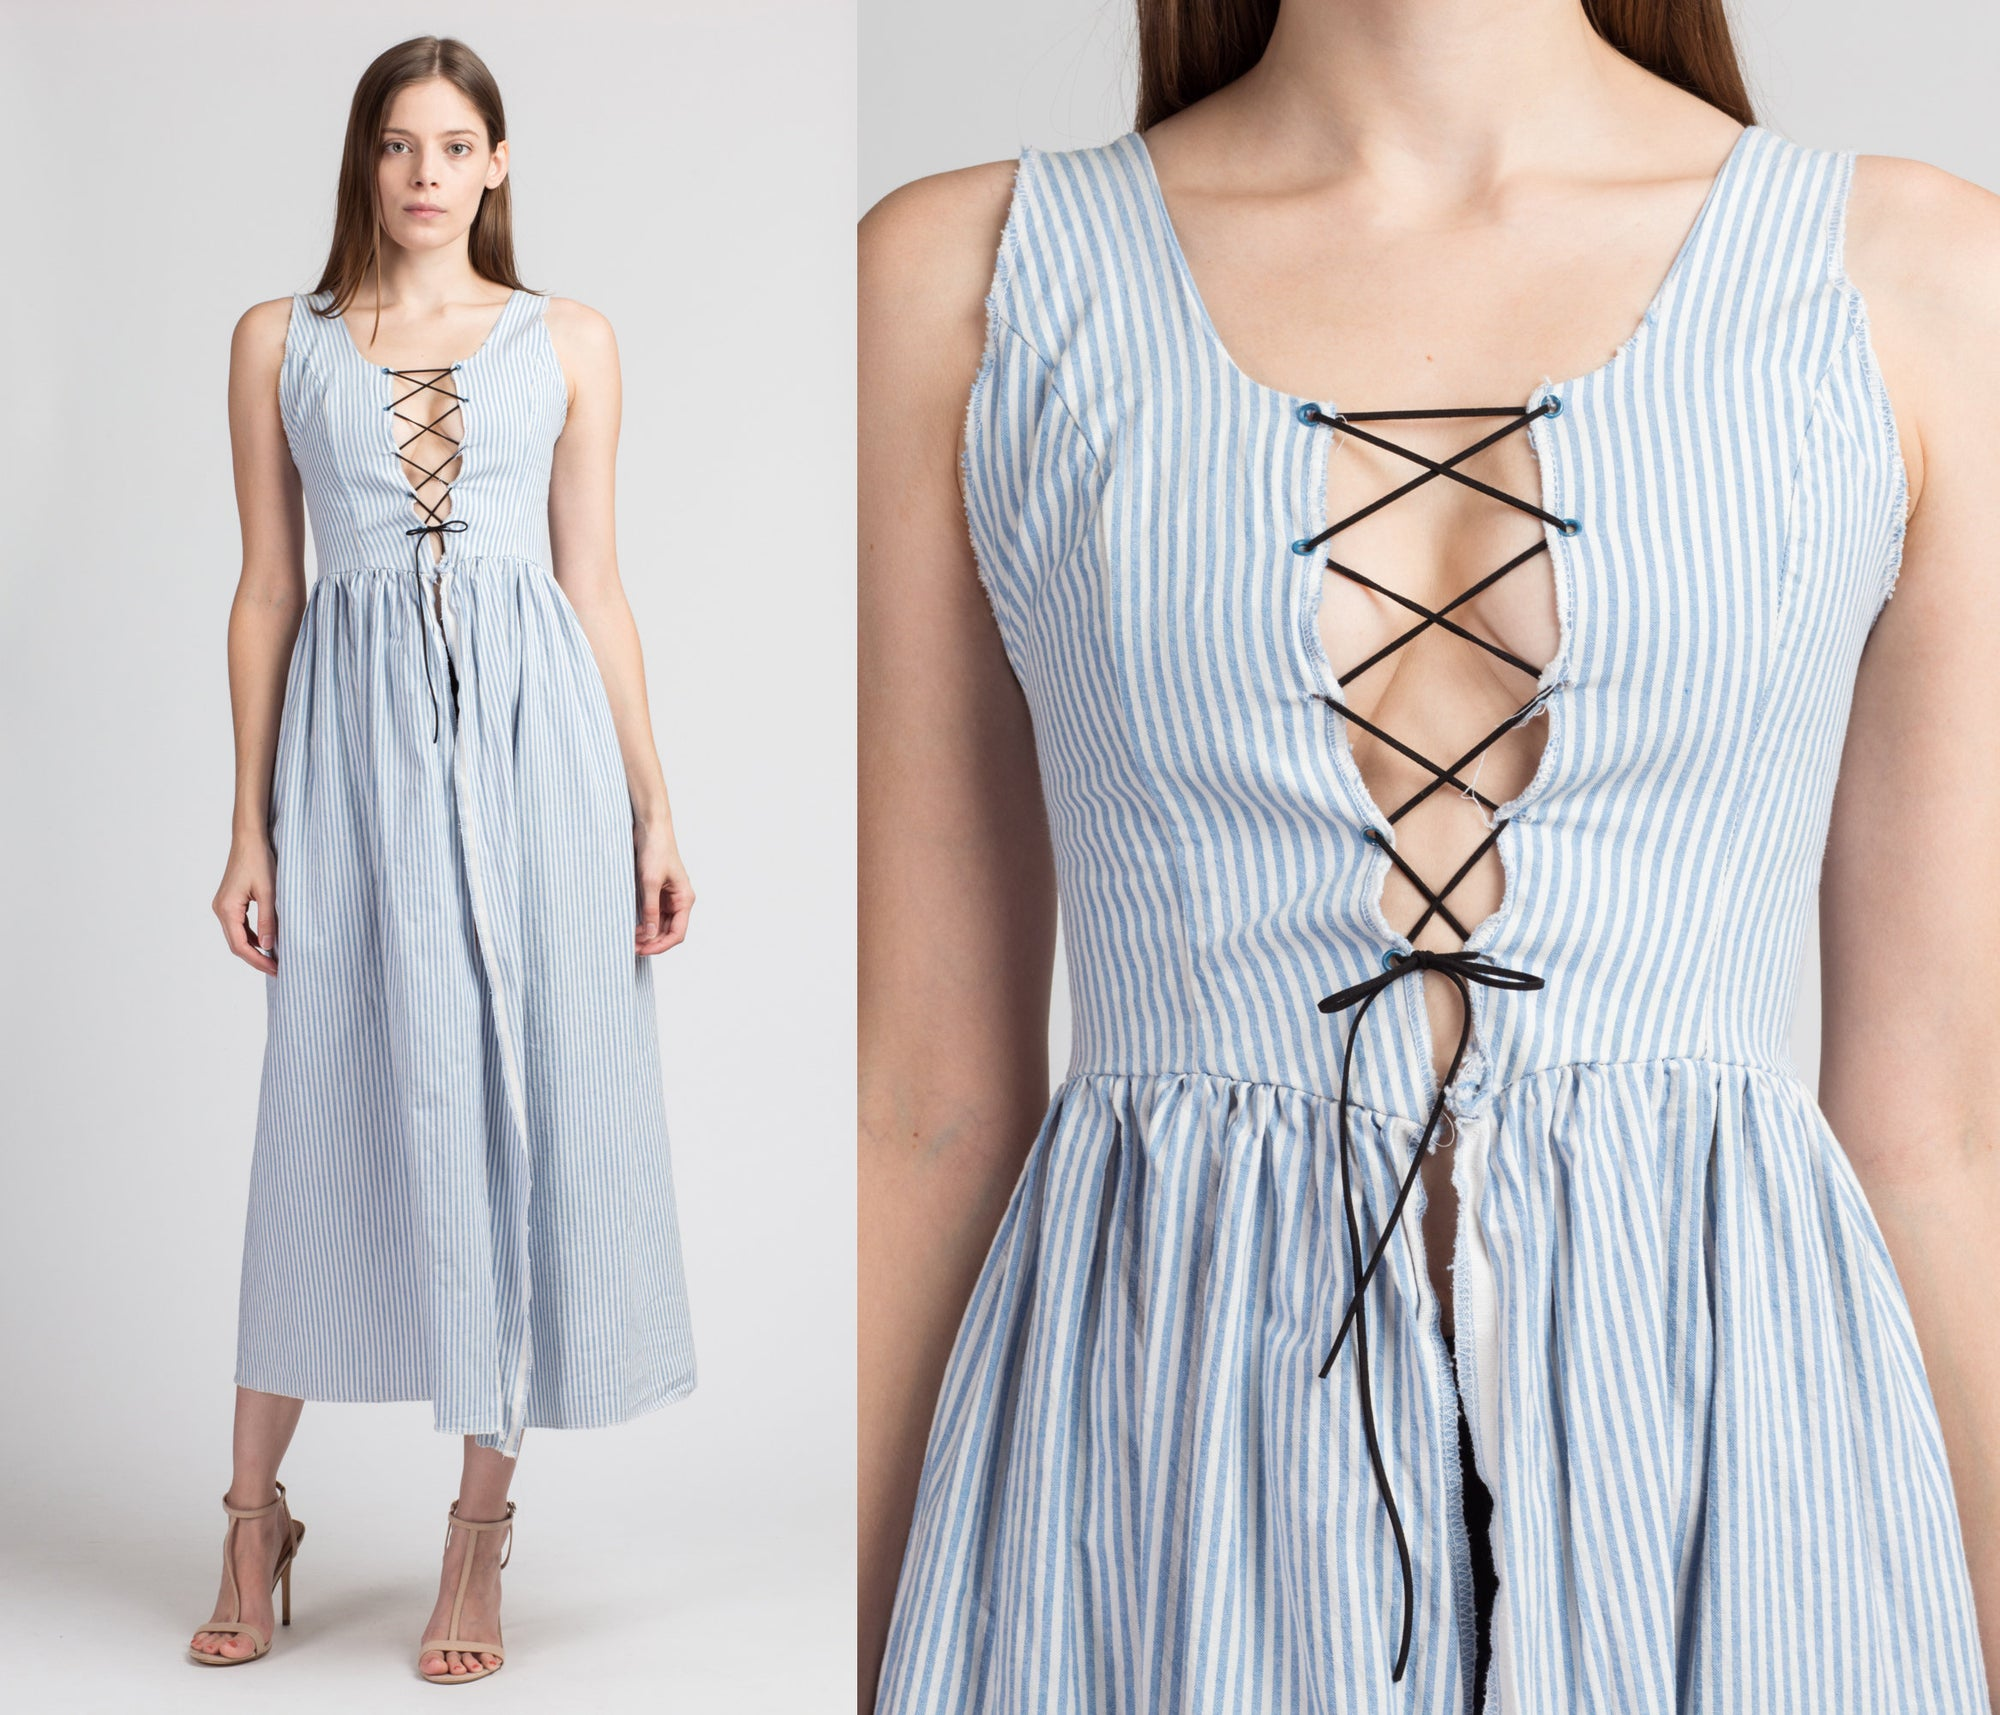 90s Blue & White Striped Lace Up Open Maxi Dress - Extra Small